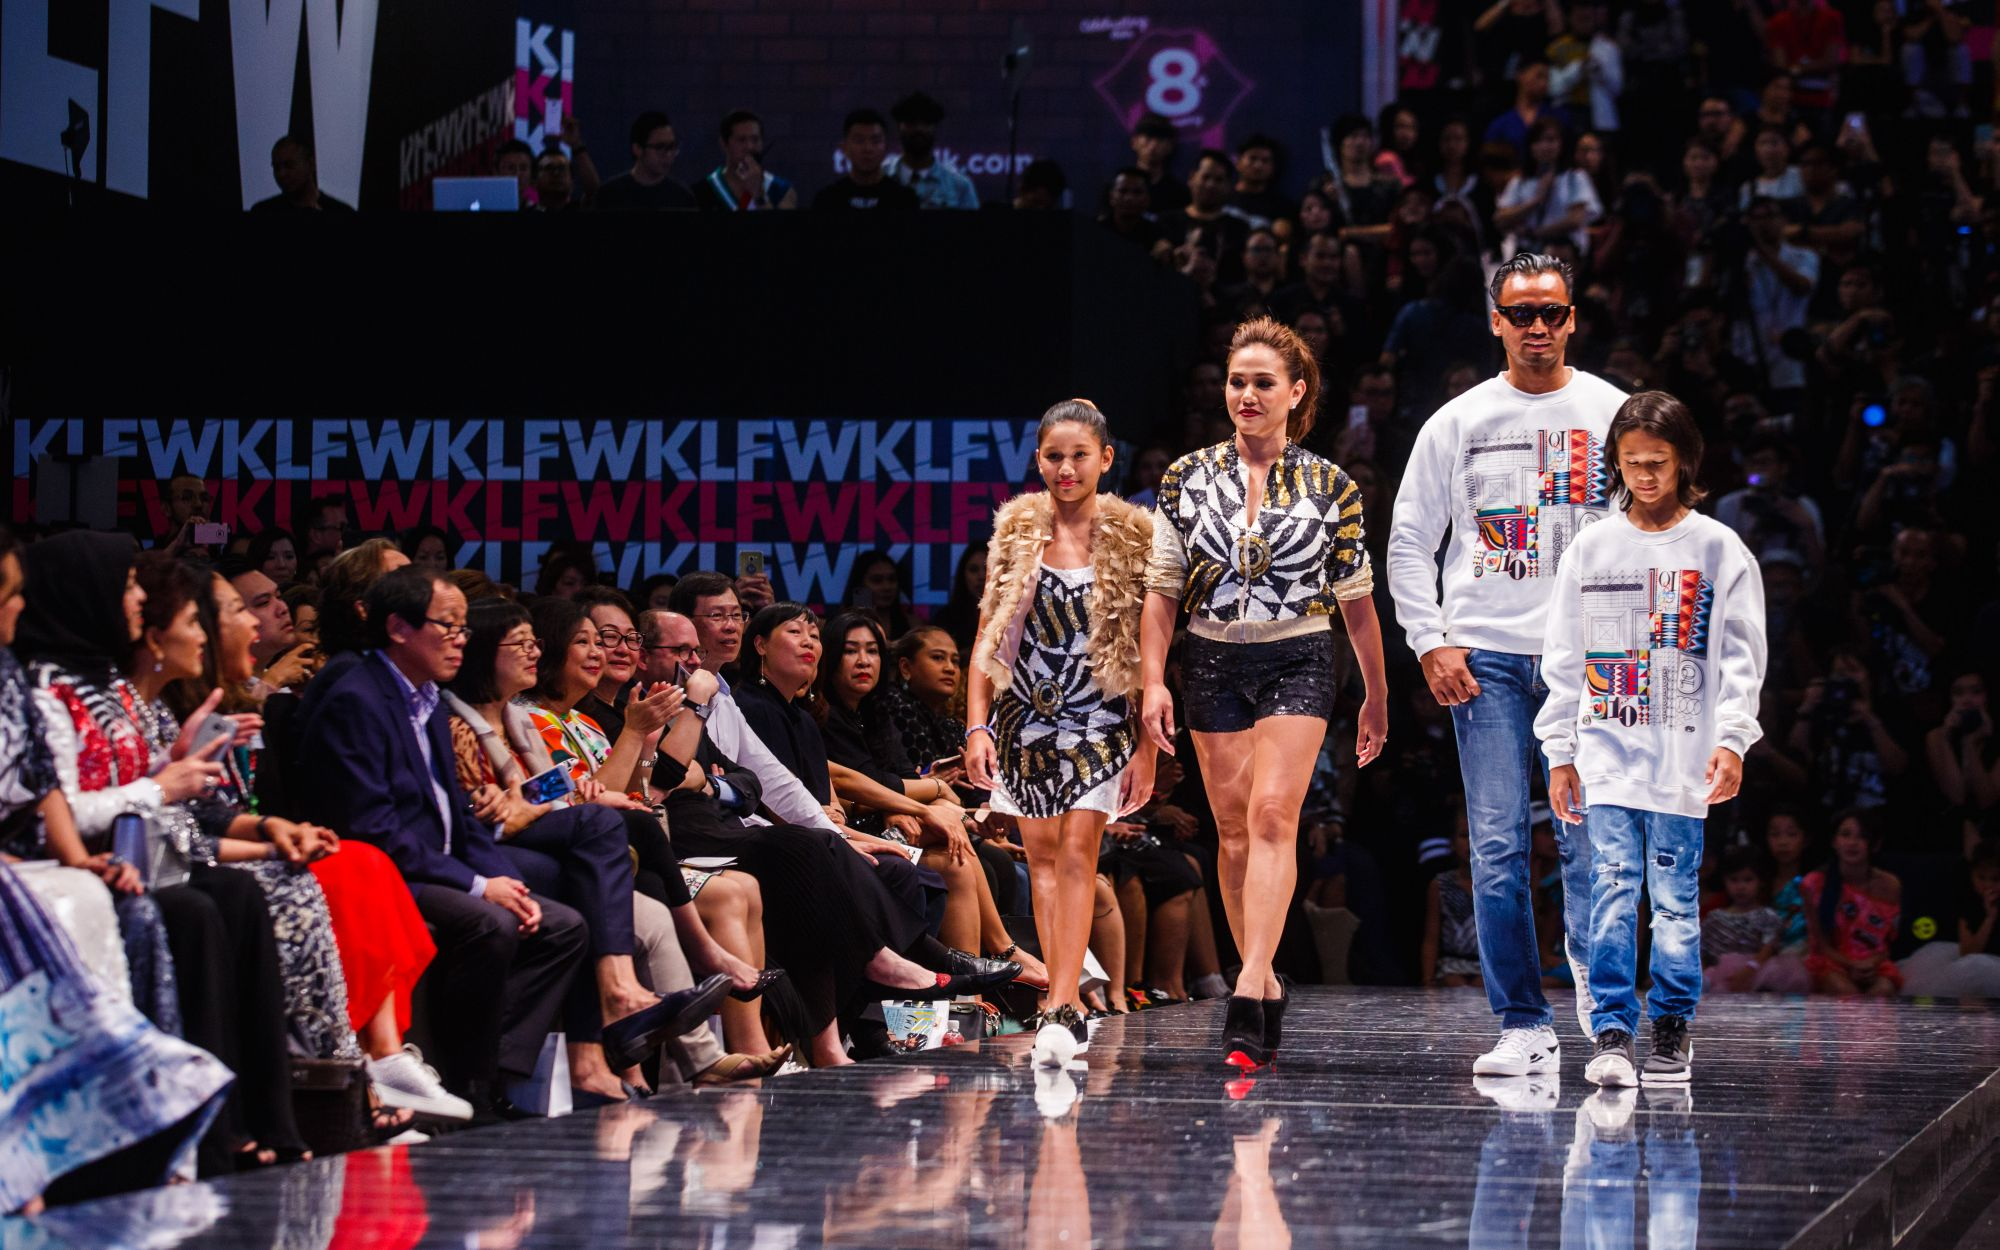 Elyna Effendi and Casmad Sanuri walks down the runway with their children Elyca and Mecael